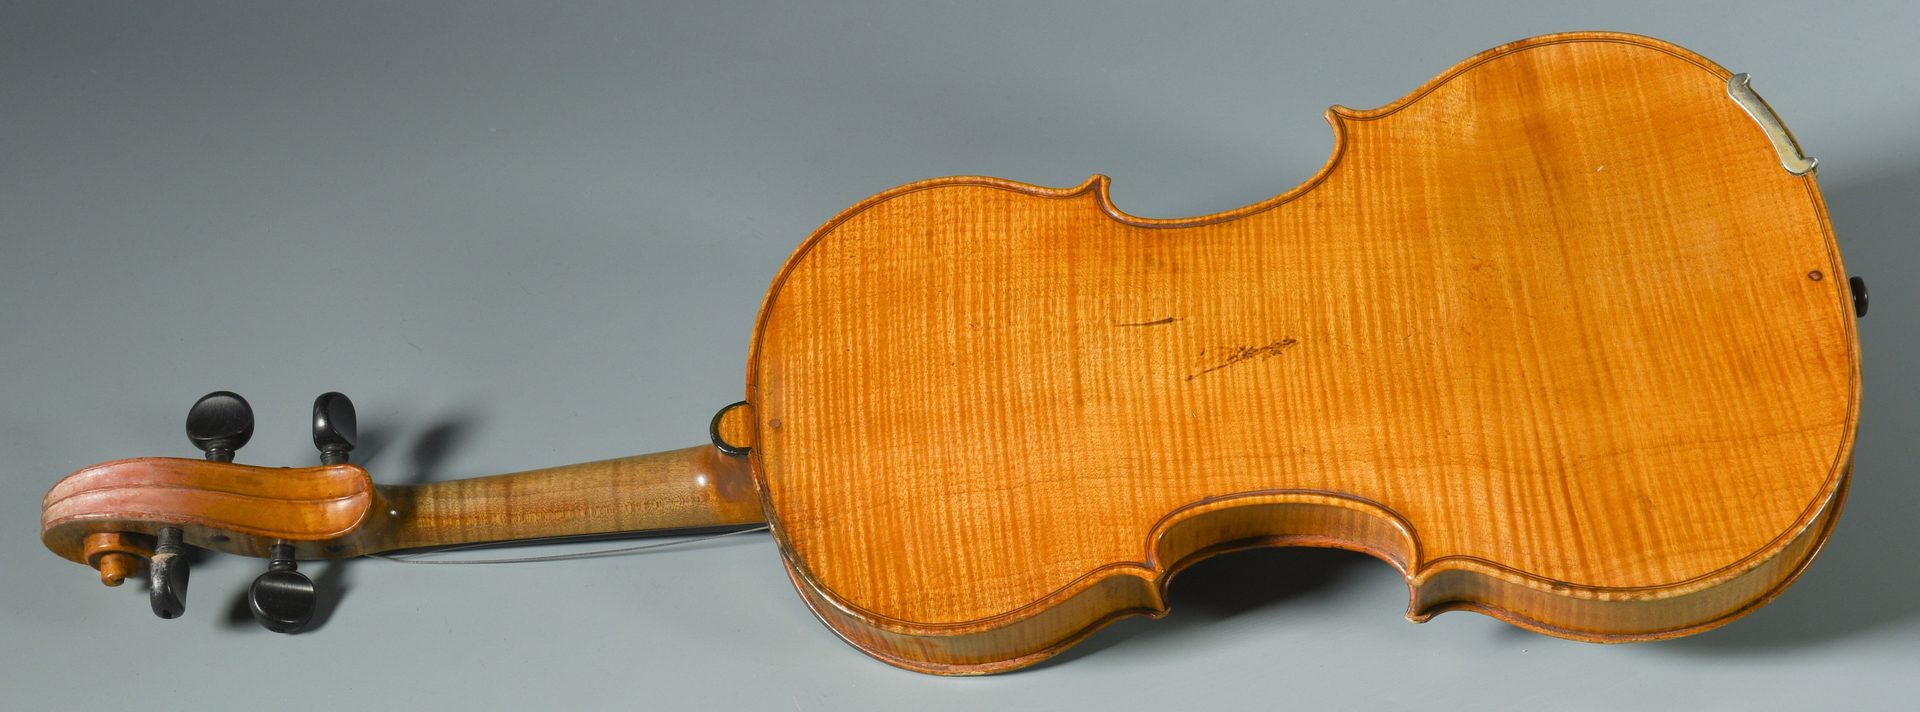 Lot 893: 19th century French Mirecourt Violin